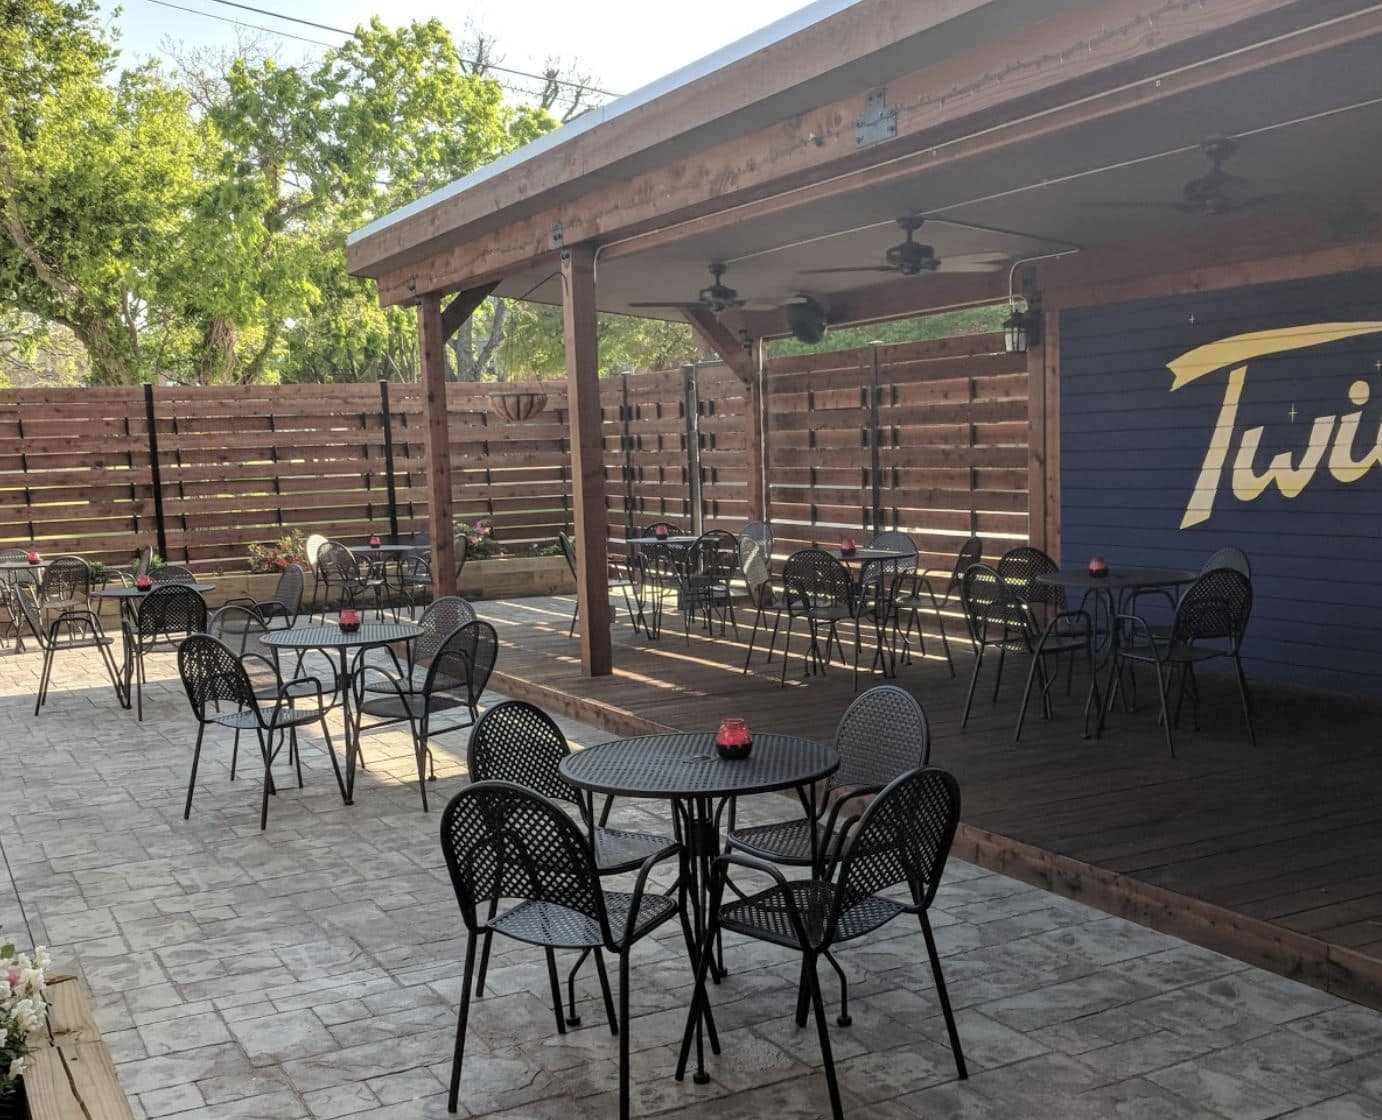 Twilite Lounge in Fort Worth